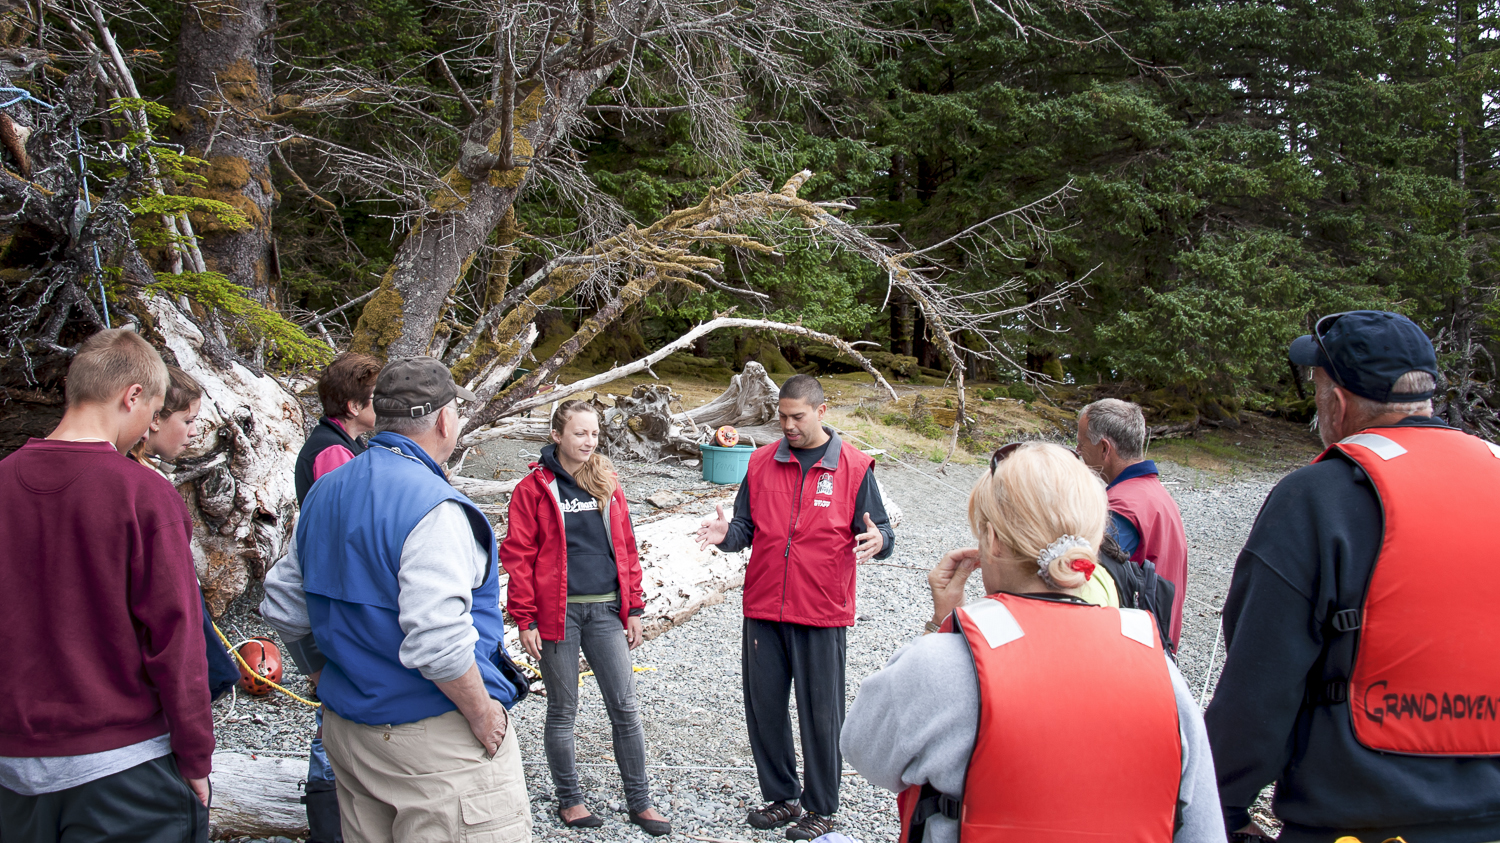 Watchman Sean shares his passion for the history of the Haida